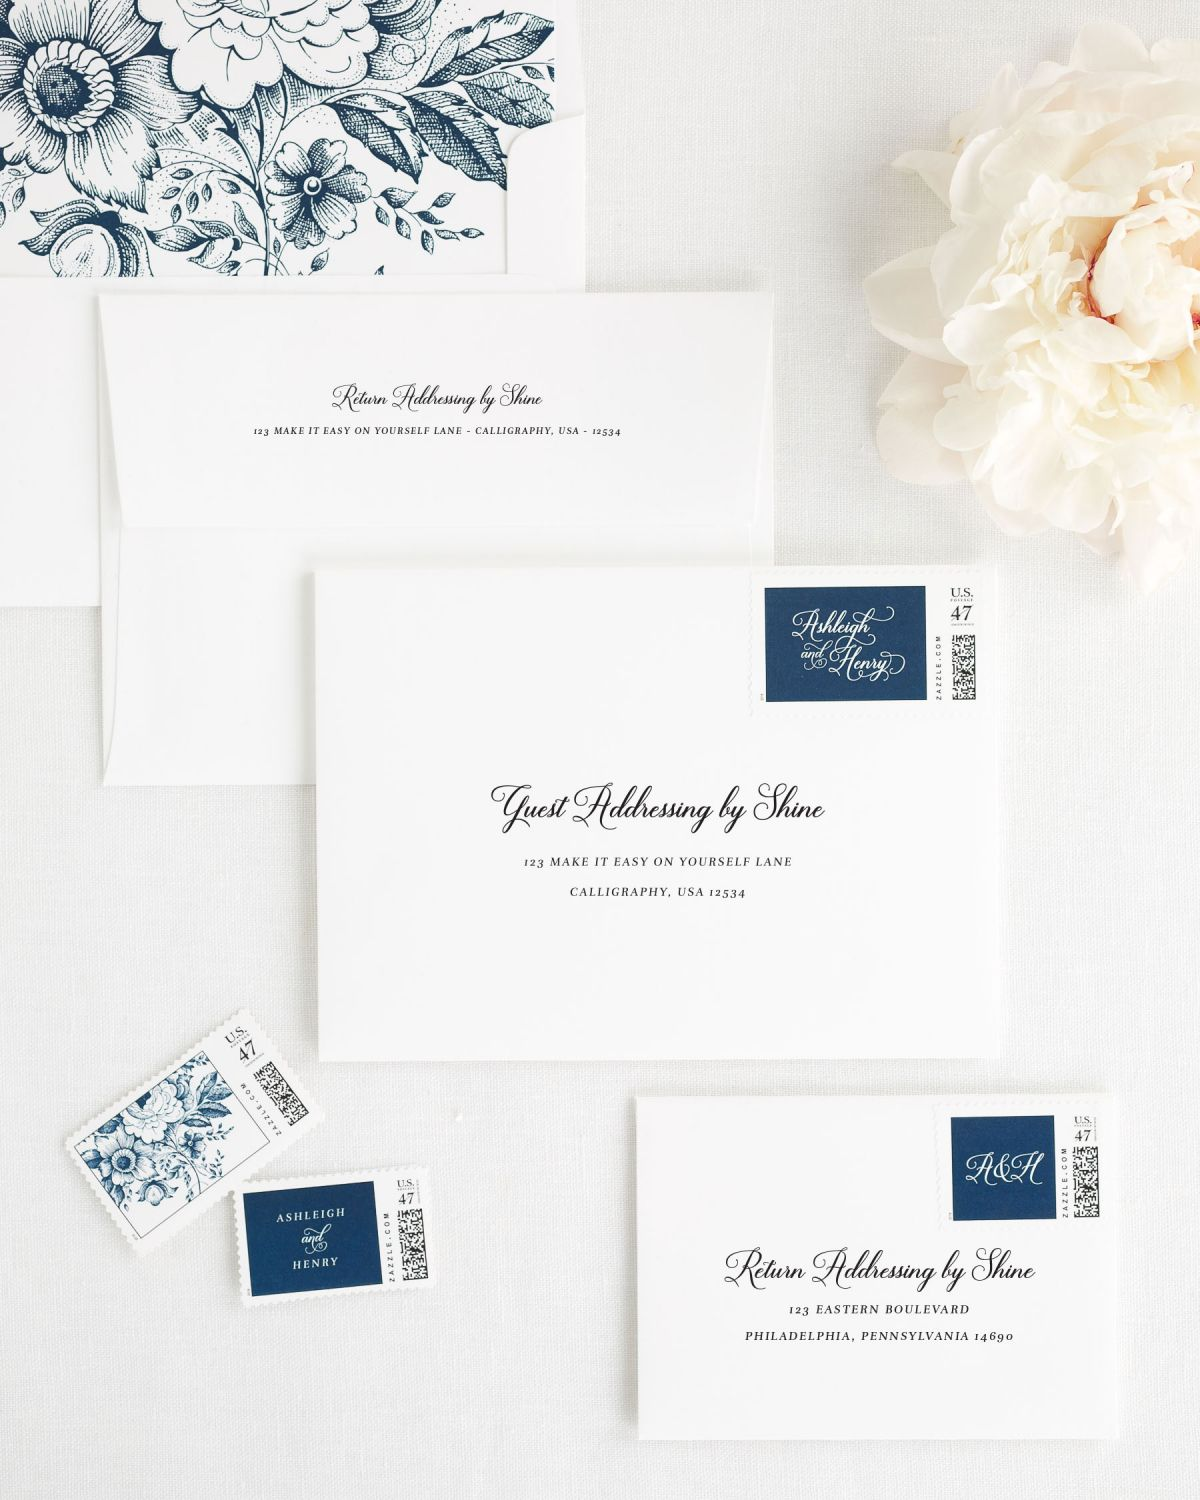 Wedding Invitation Envelopes with Custom Stamps in Navy Blue